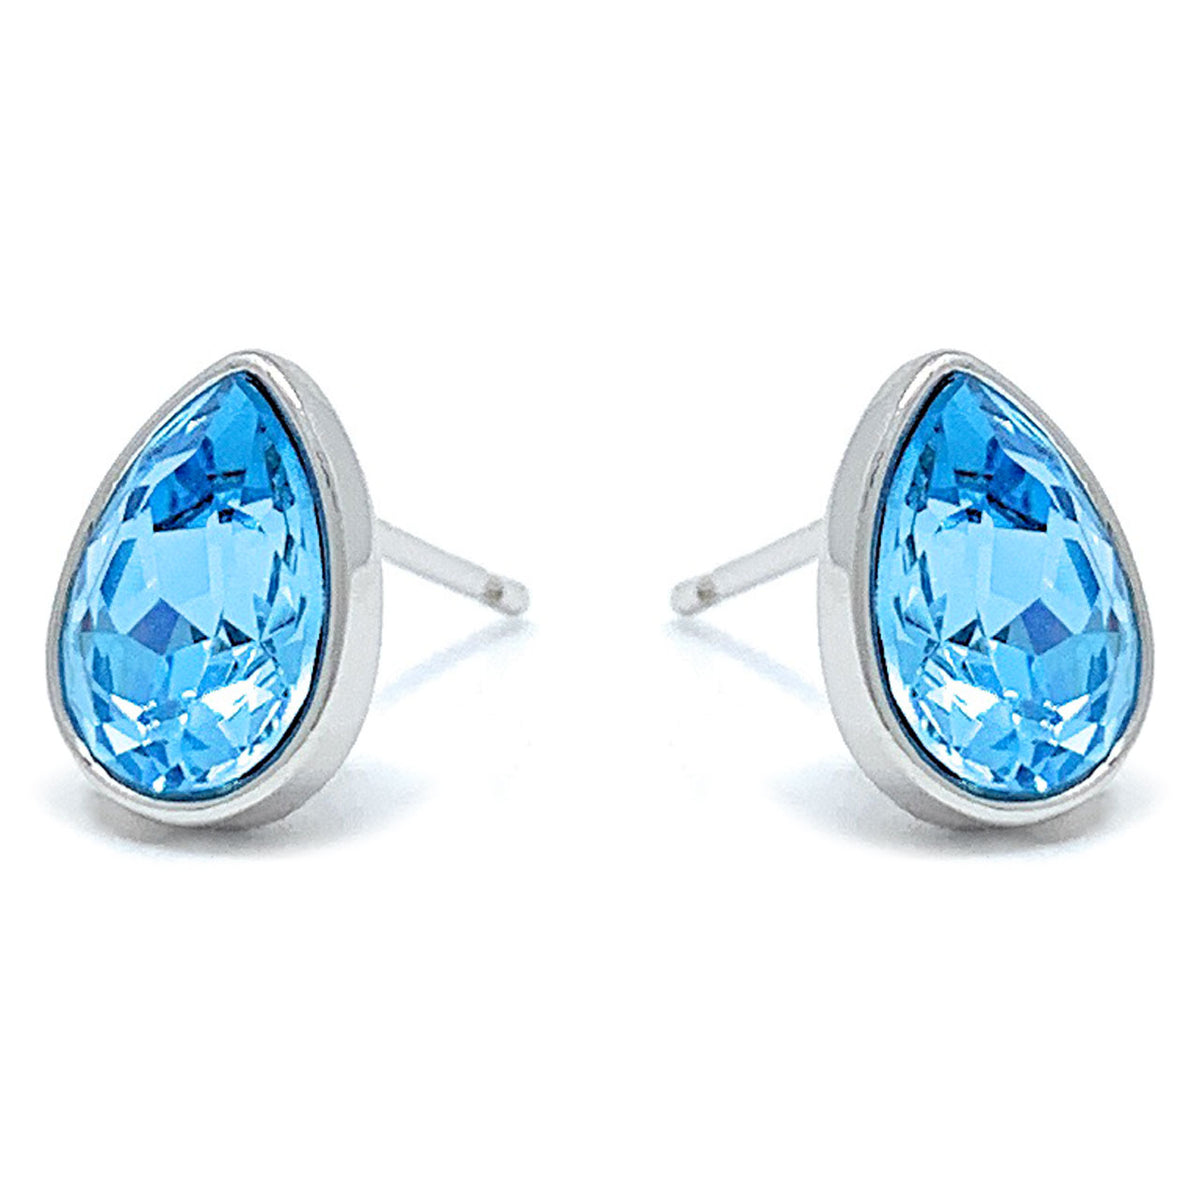 Mary Small Stud Earrings with Blue Aquamarine Drop Crystals from Swarovski Silver Toned Rhodium Plated - Ed Heart